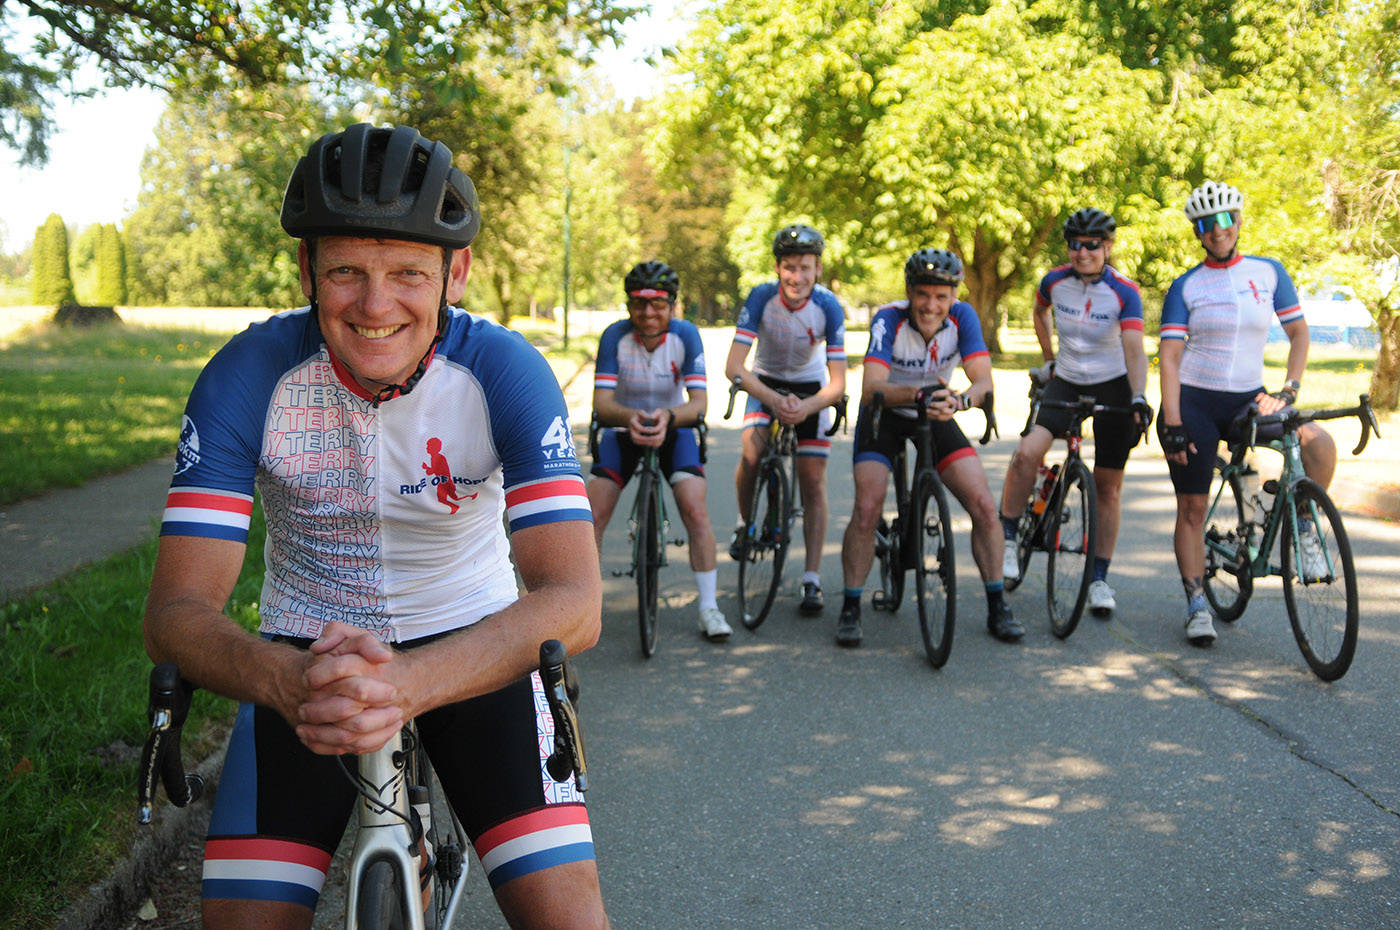 Members of the Fraser Valley Try Like Terry team, including Terry Fox's brother Darrell Fox (foreground) are gearing up for their 410-kilometre Ride of Hope fundraiser on July 3, 2021. (Jenna Hauck/ Chilliwack Progress)